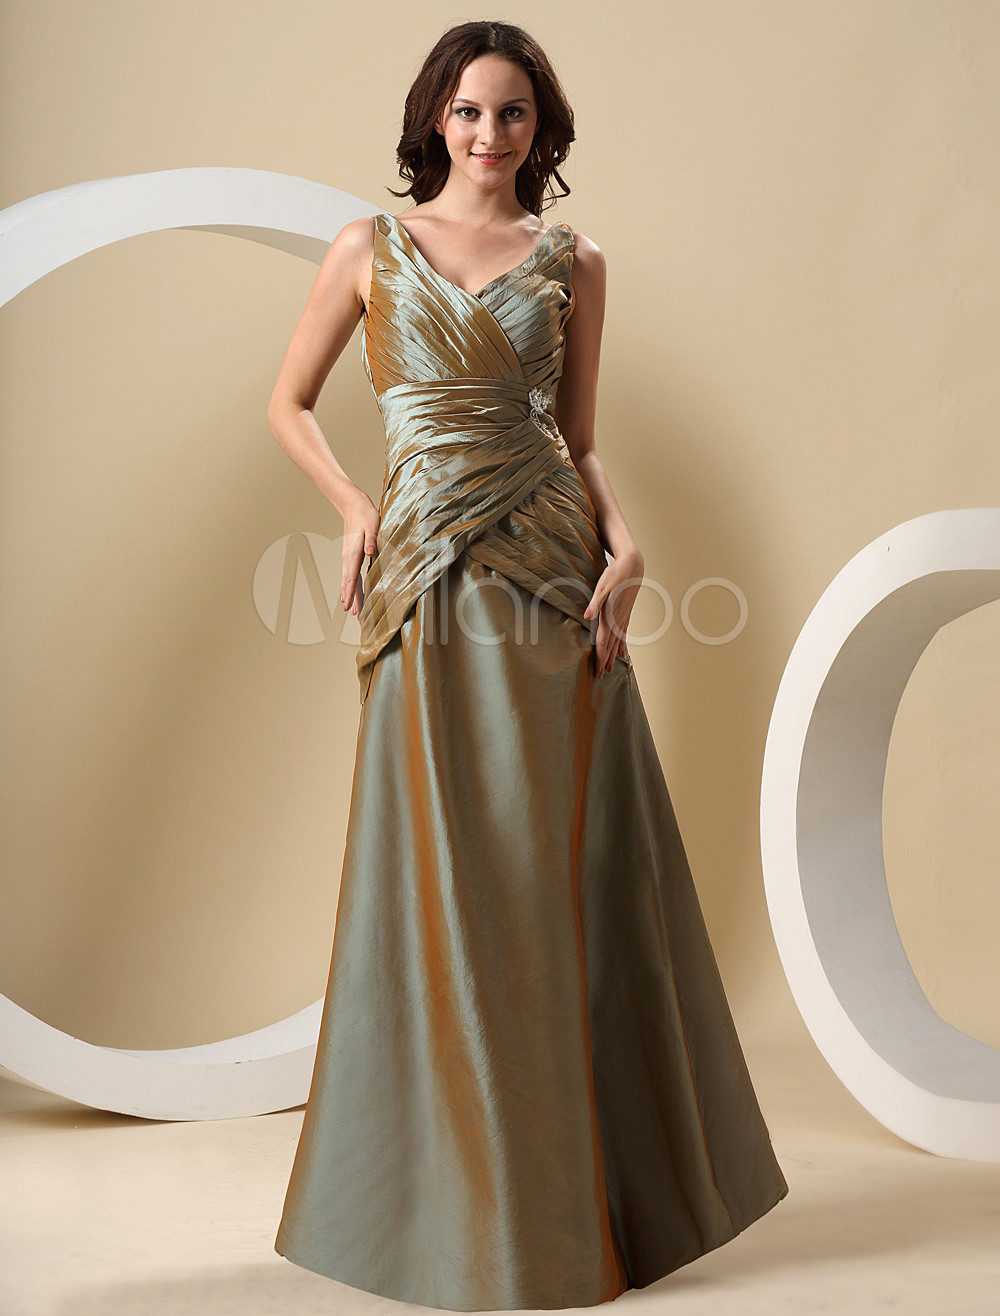 Luxurious Caesious Taffeta Floor Length Bridesmaid Dress